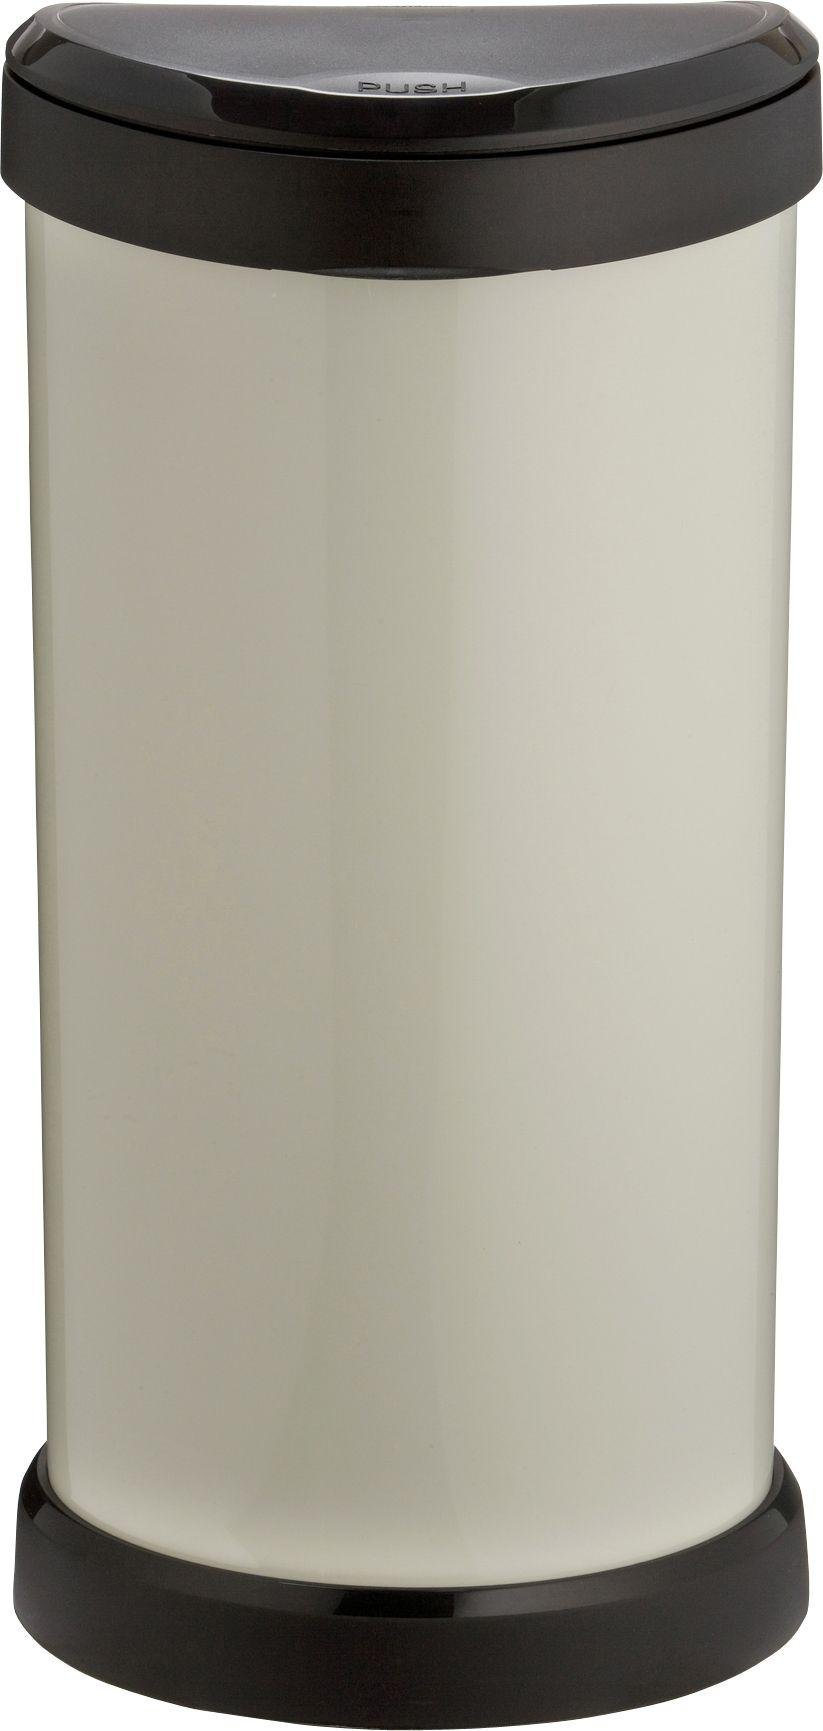 Image of Curver 40 Litre Touch Top Kitchen Bin - Ivory